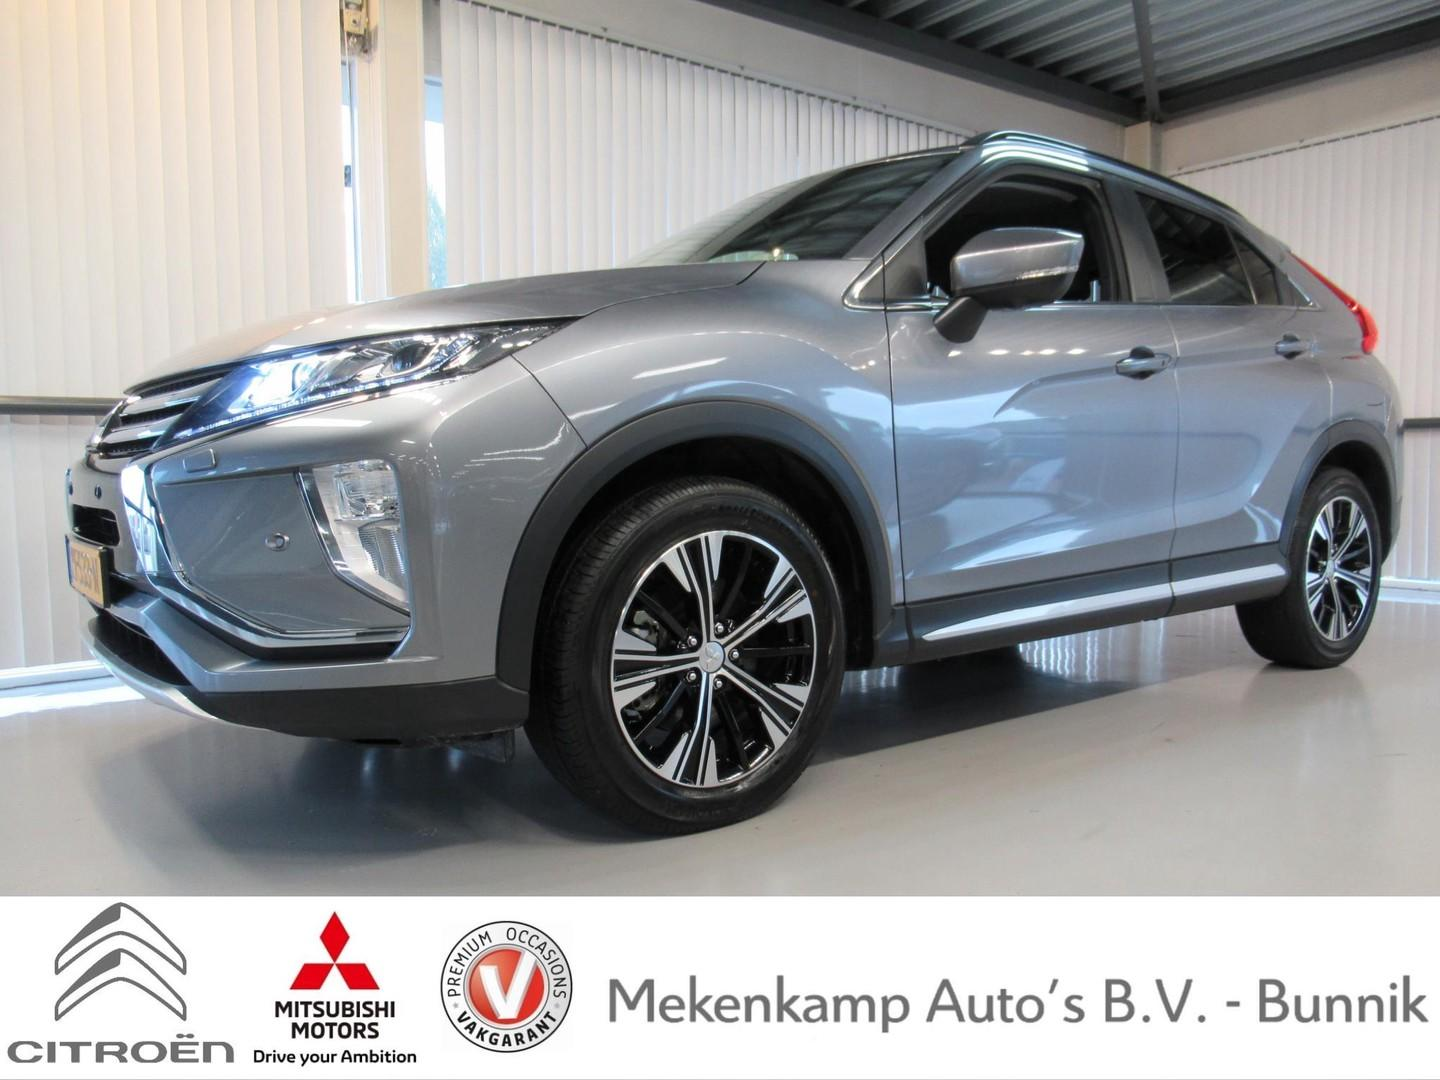 """Mitsubishi Eclipse cross 1.5 di-t first edition cvt 18""""/led/apple carplay & android auto/360 camera/pdc v+a/stoelverwarming/dodehoek/climate/cruise/bluetooth"""